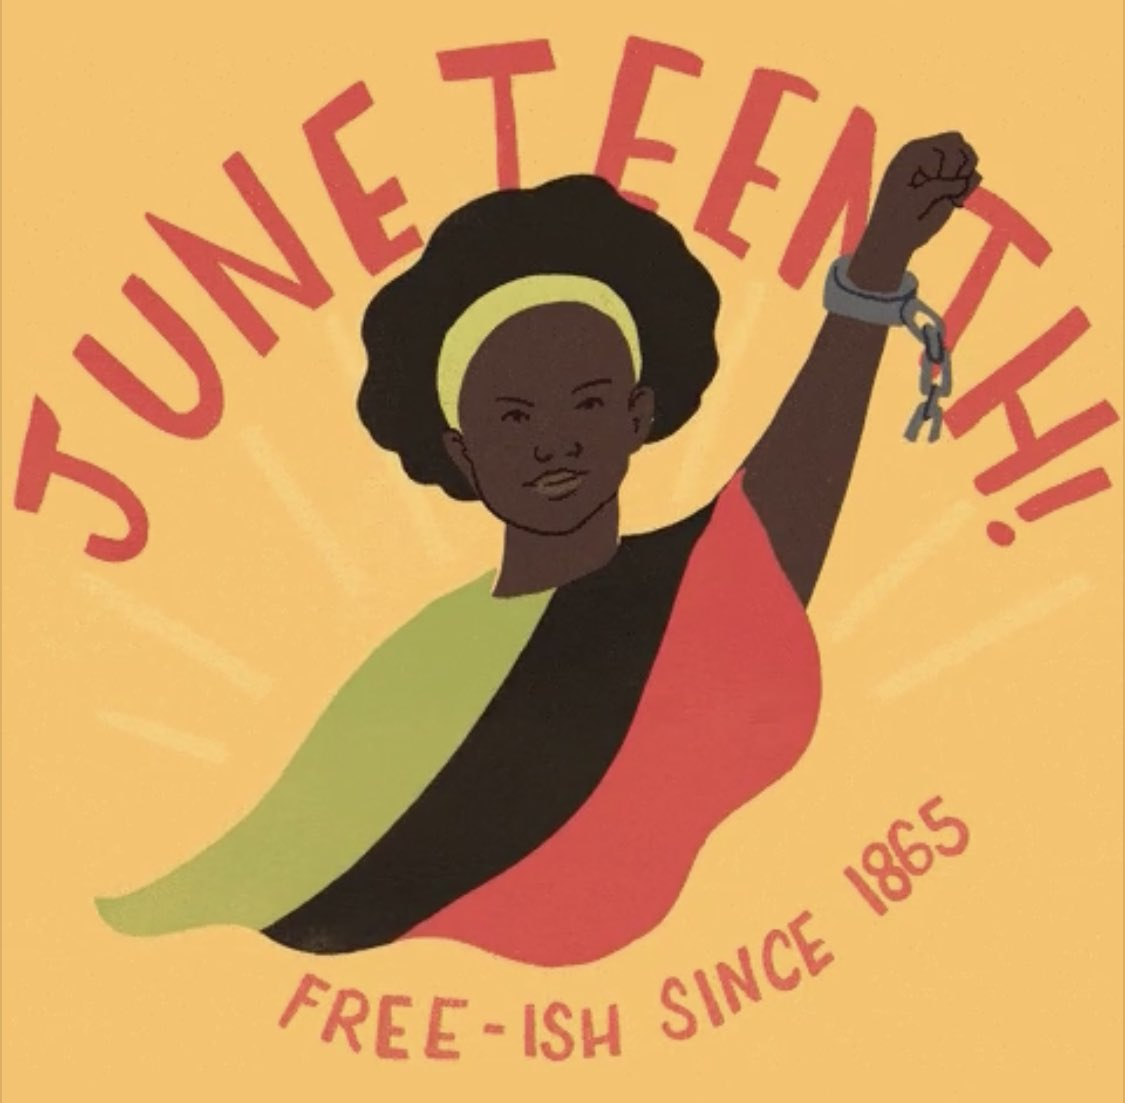 Happy Juneteenth! <a target='_blank' href='https://t.co/b4tQXA8WxL'>https://t.co/b4tQXA8WxL</a>